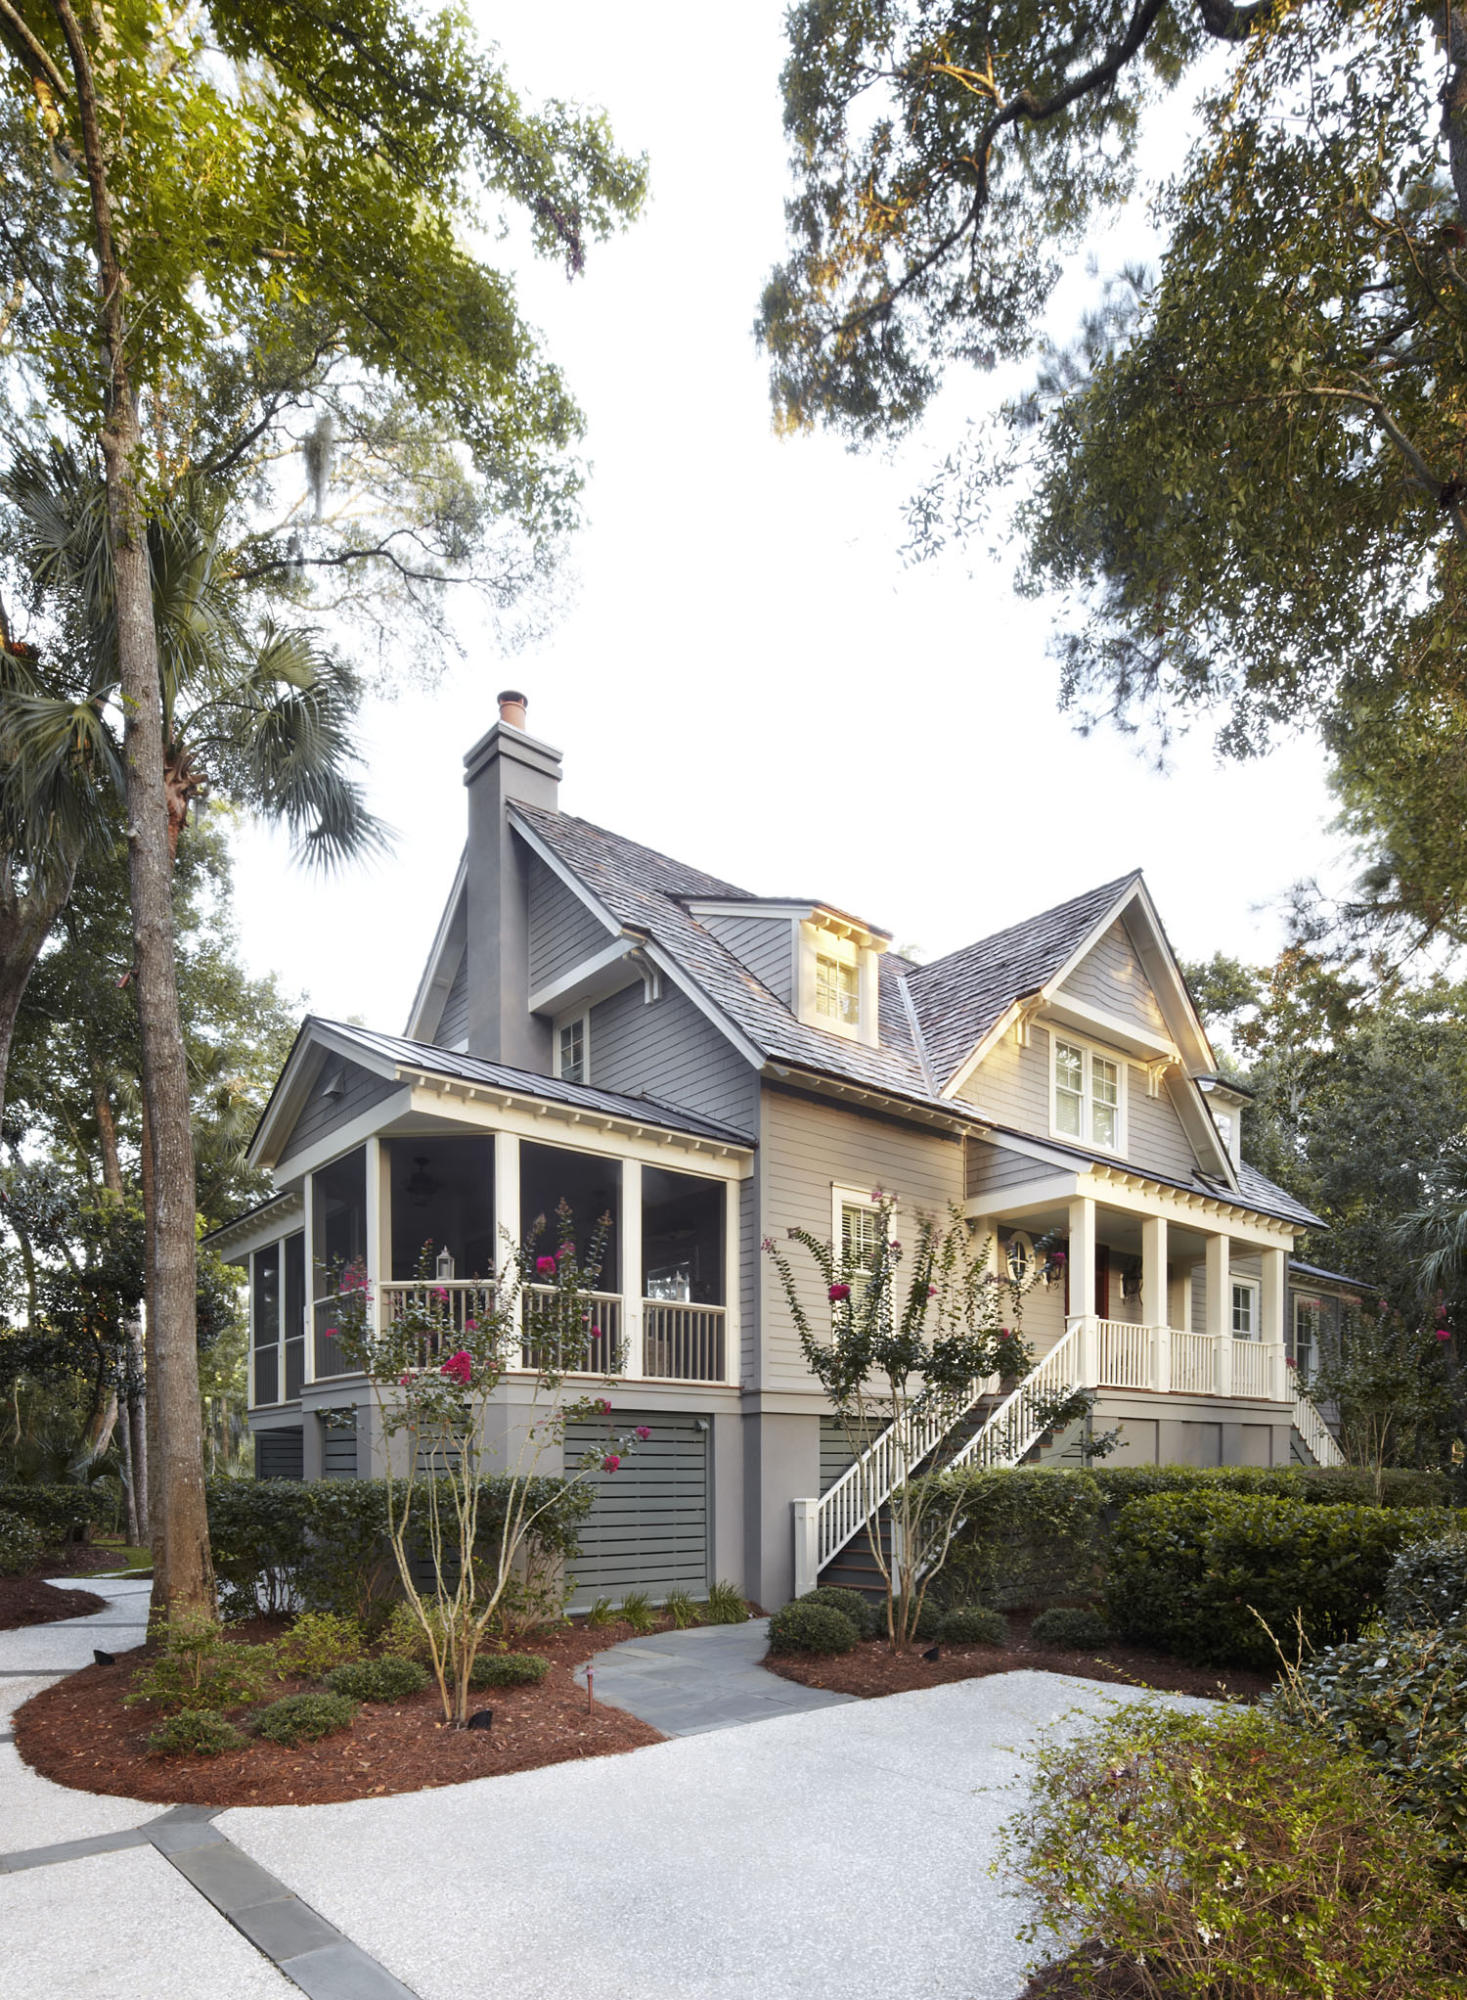 Photo of 228 Kings Island, Kiawah Island, SC 29455